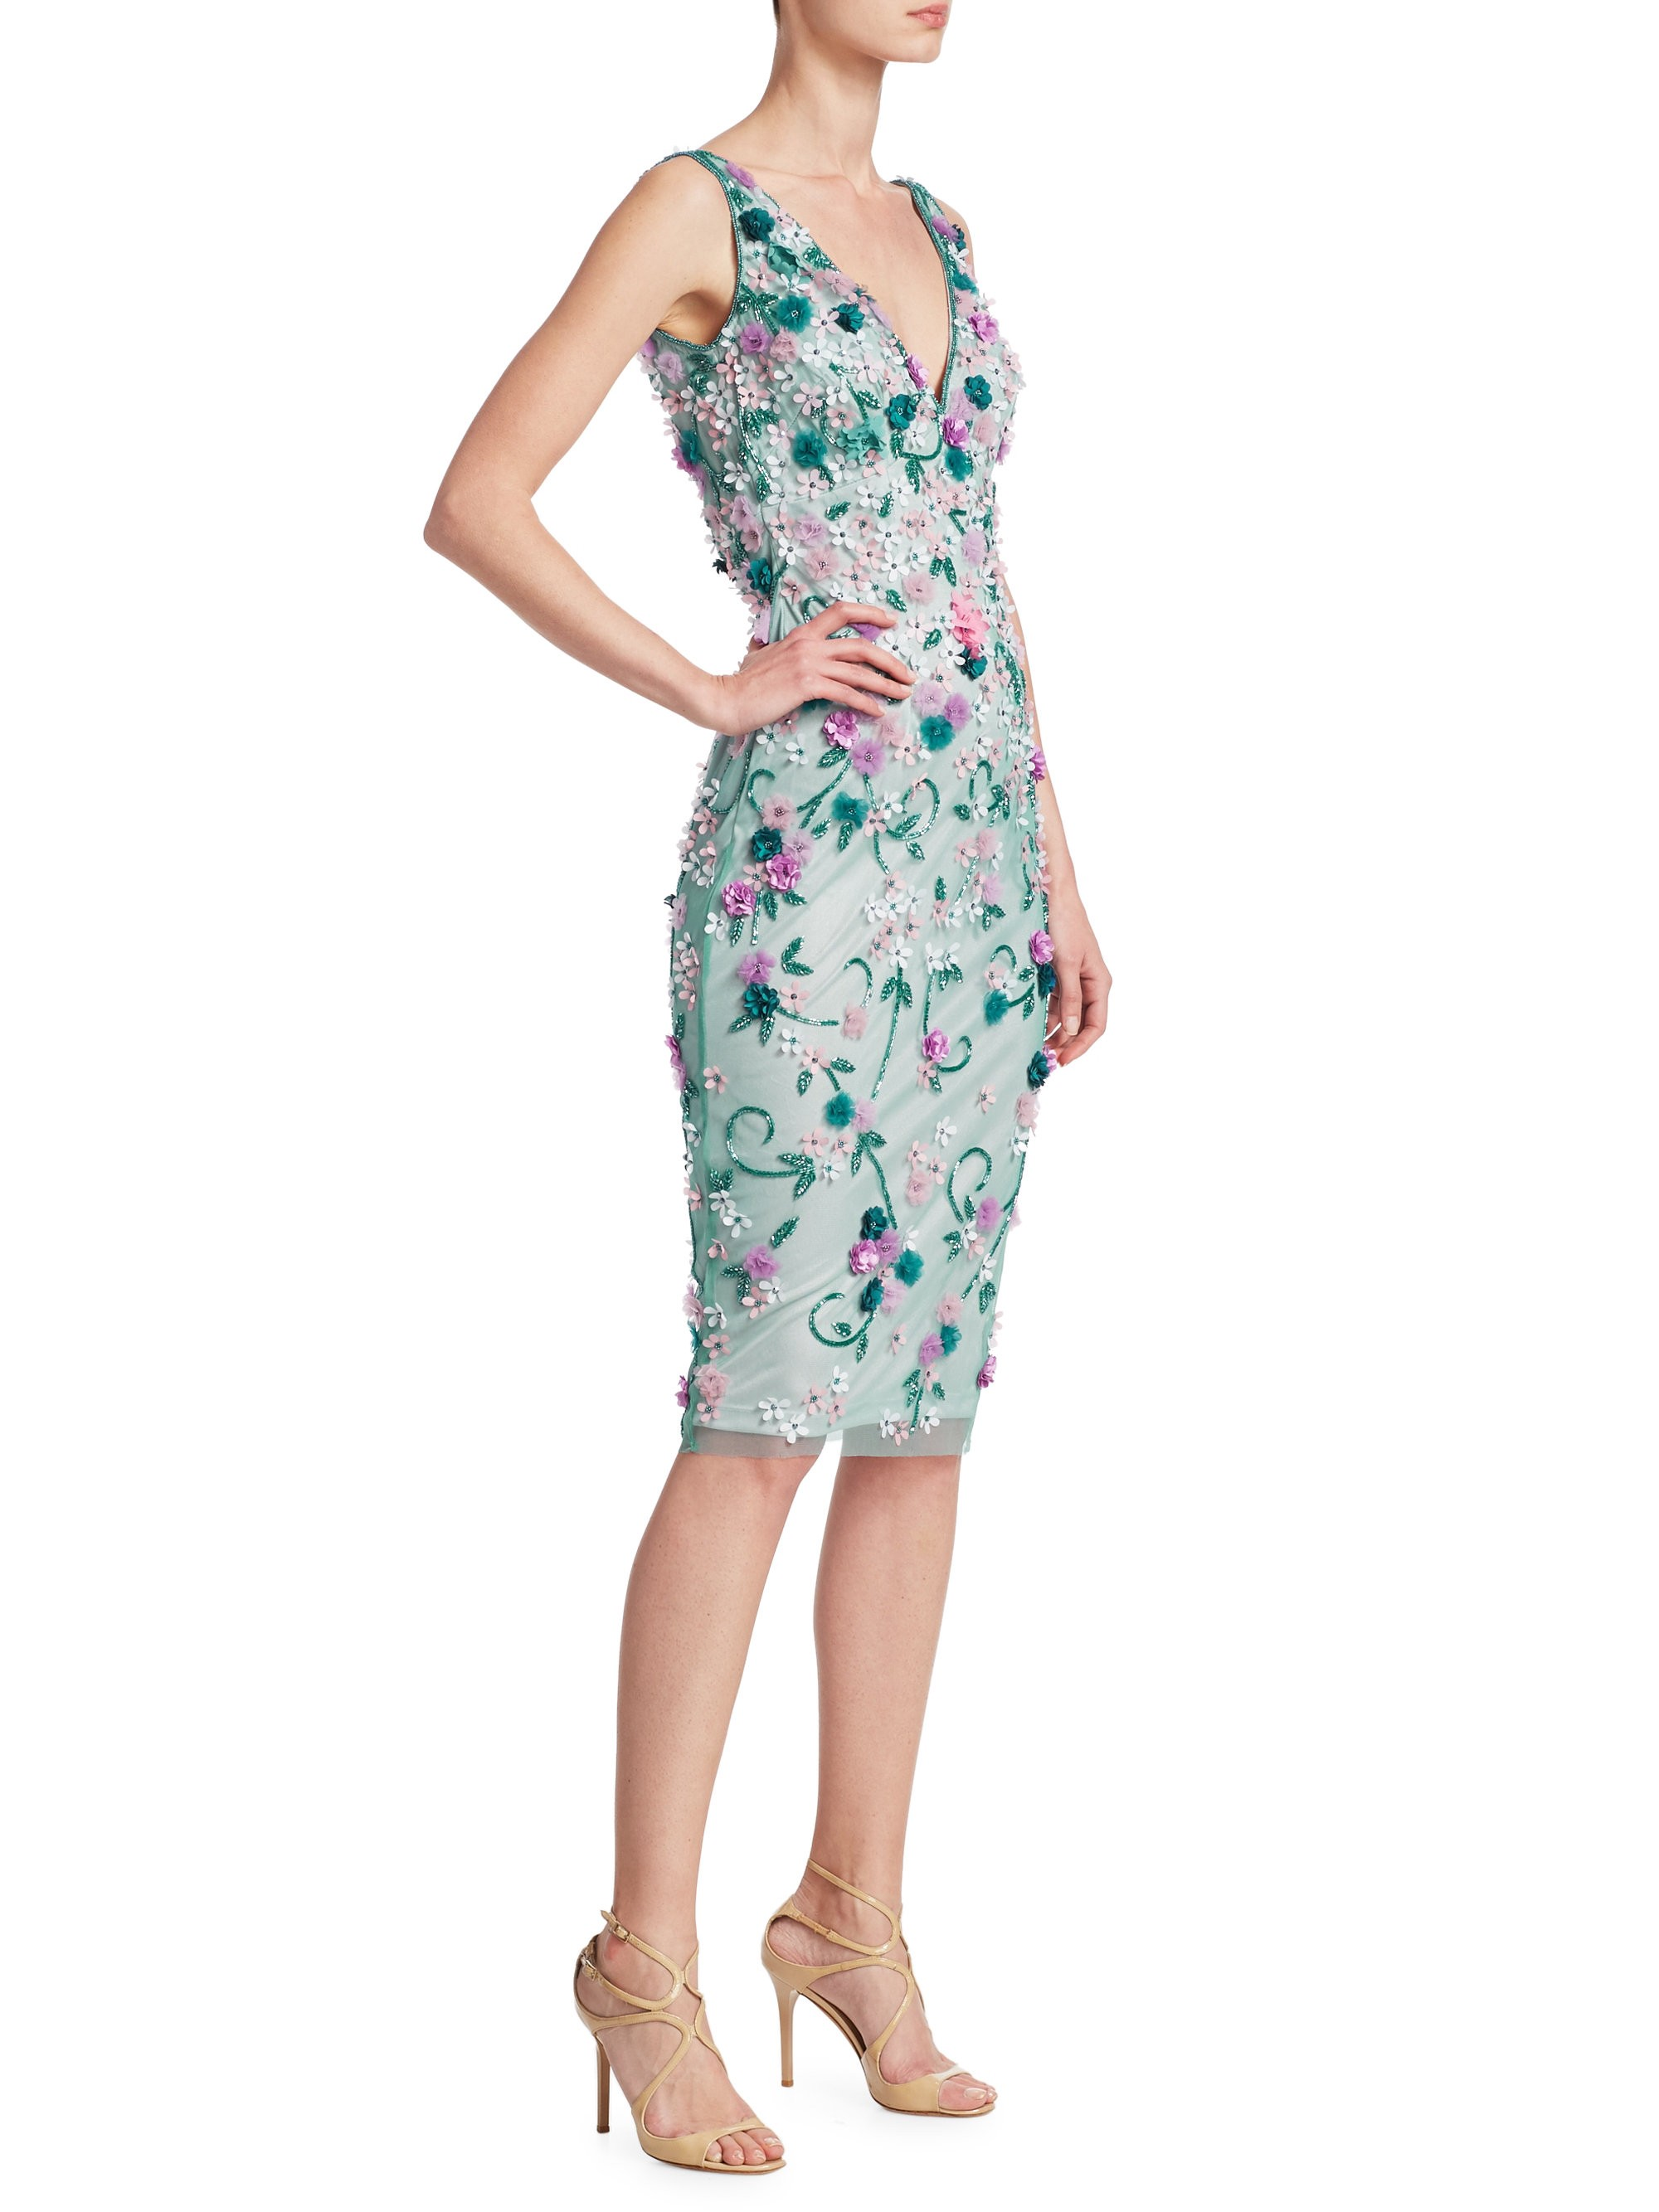 Theia Embellished Cocktail Dress - Jade Multi 14 | Products